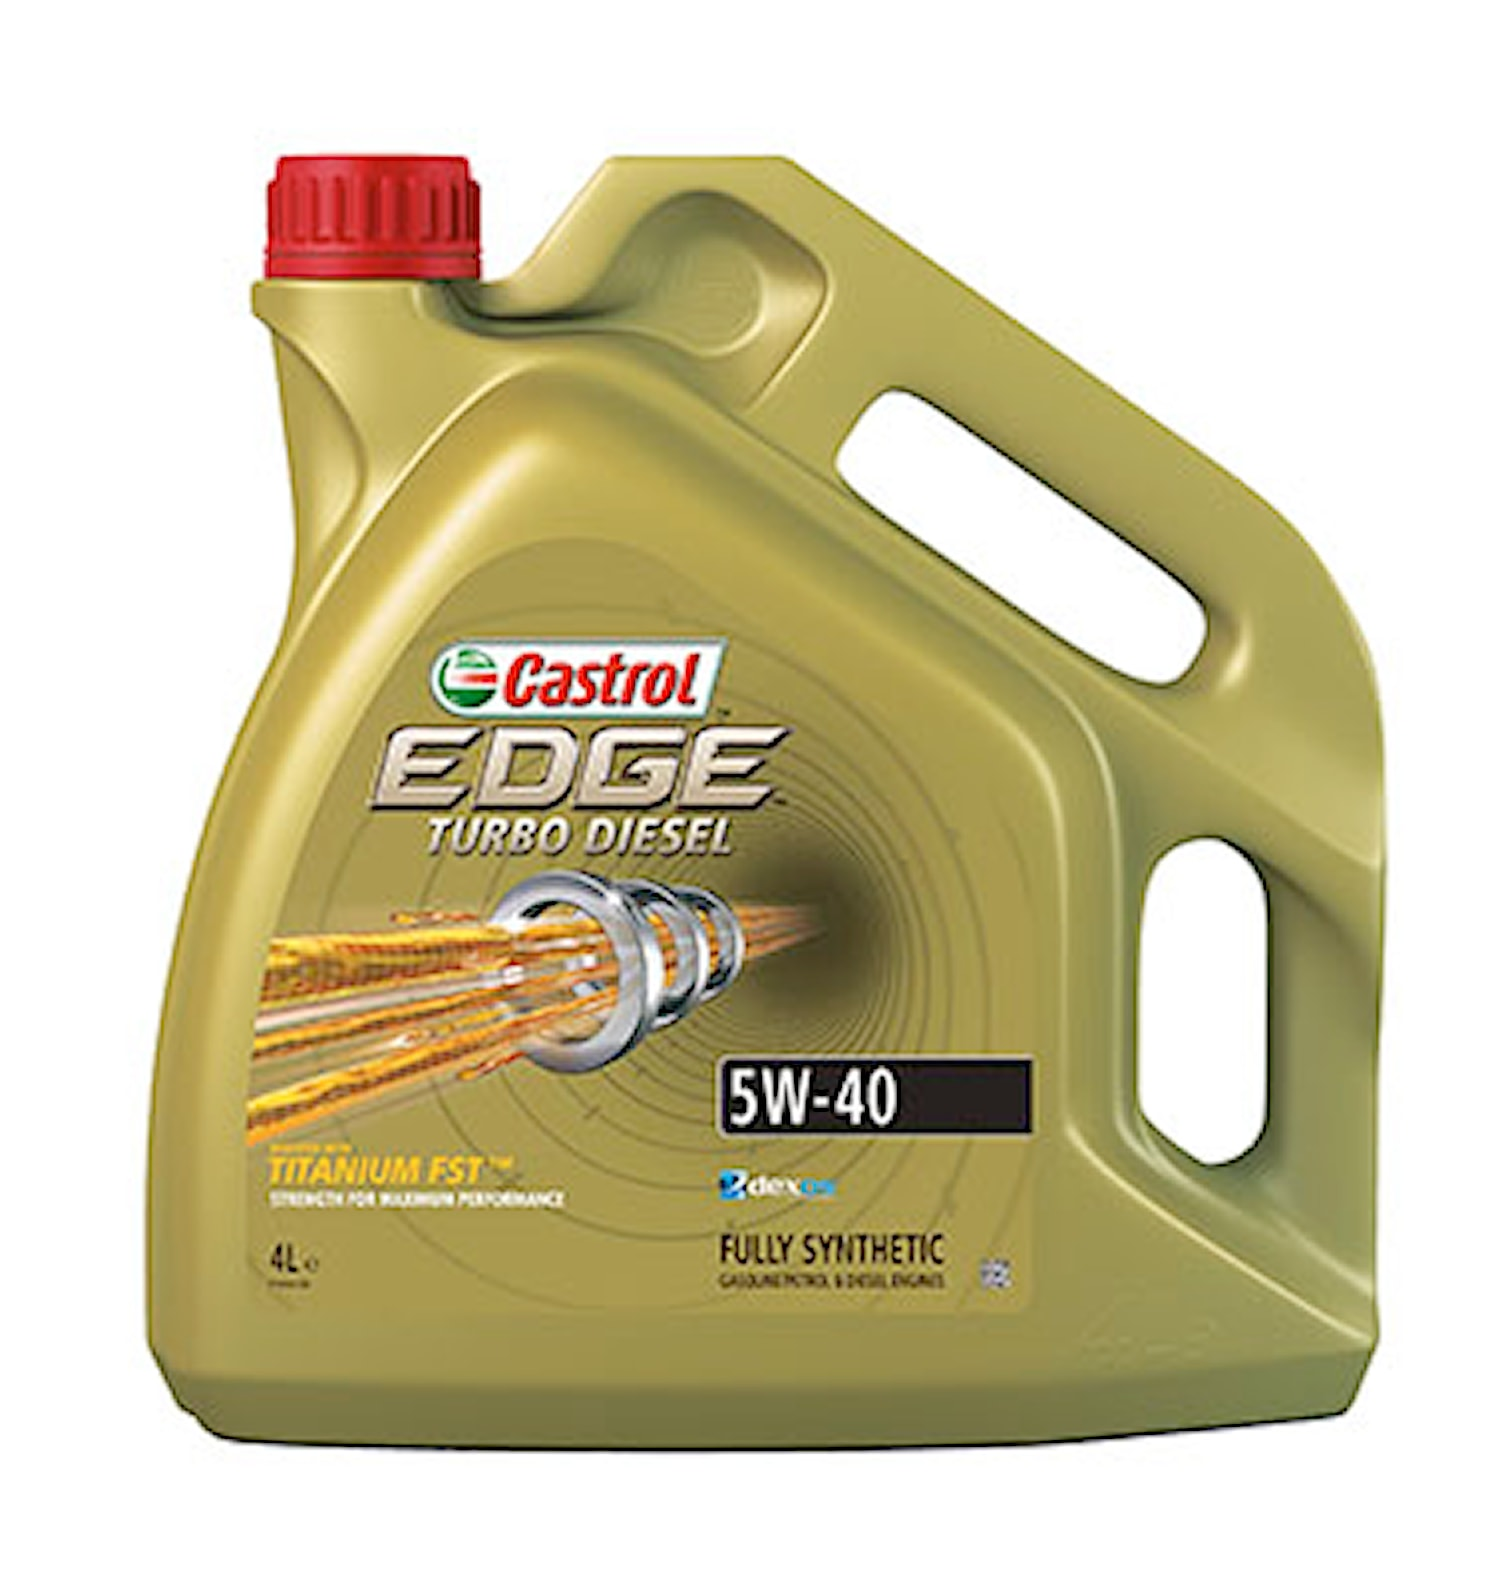 EDGE Ti Turbo Diesel 5W-40 4l